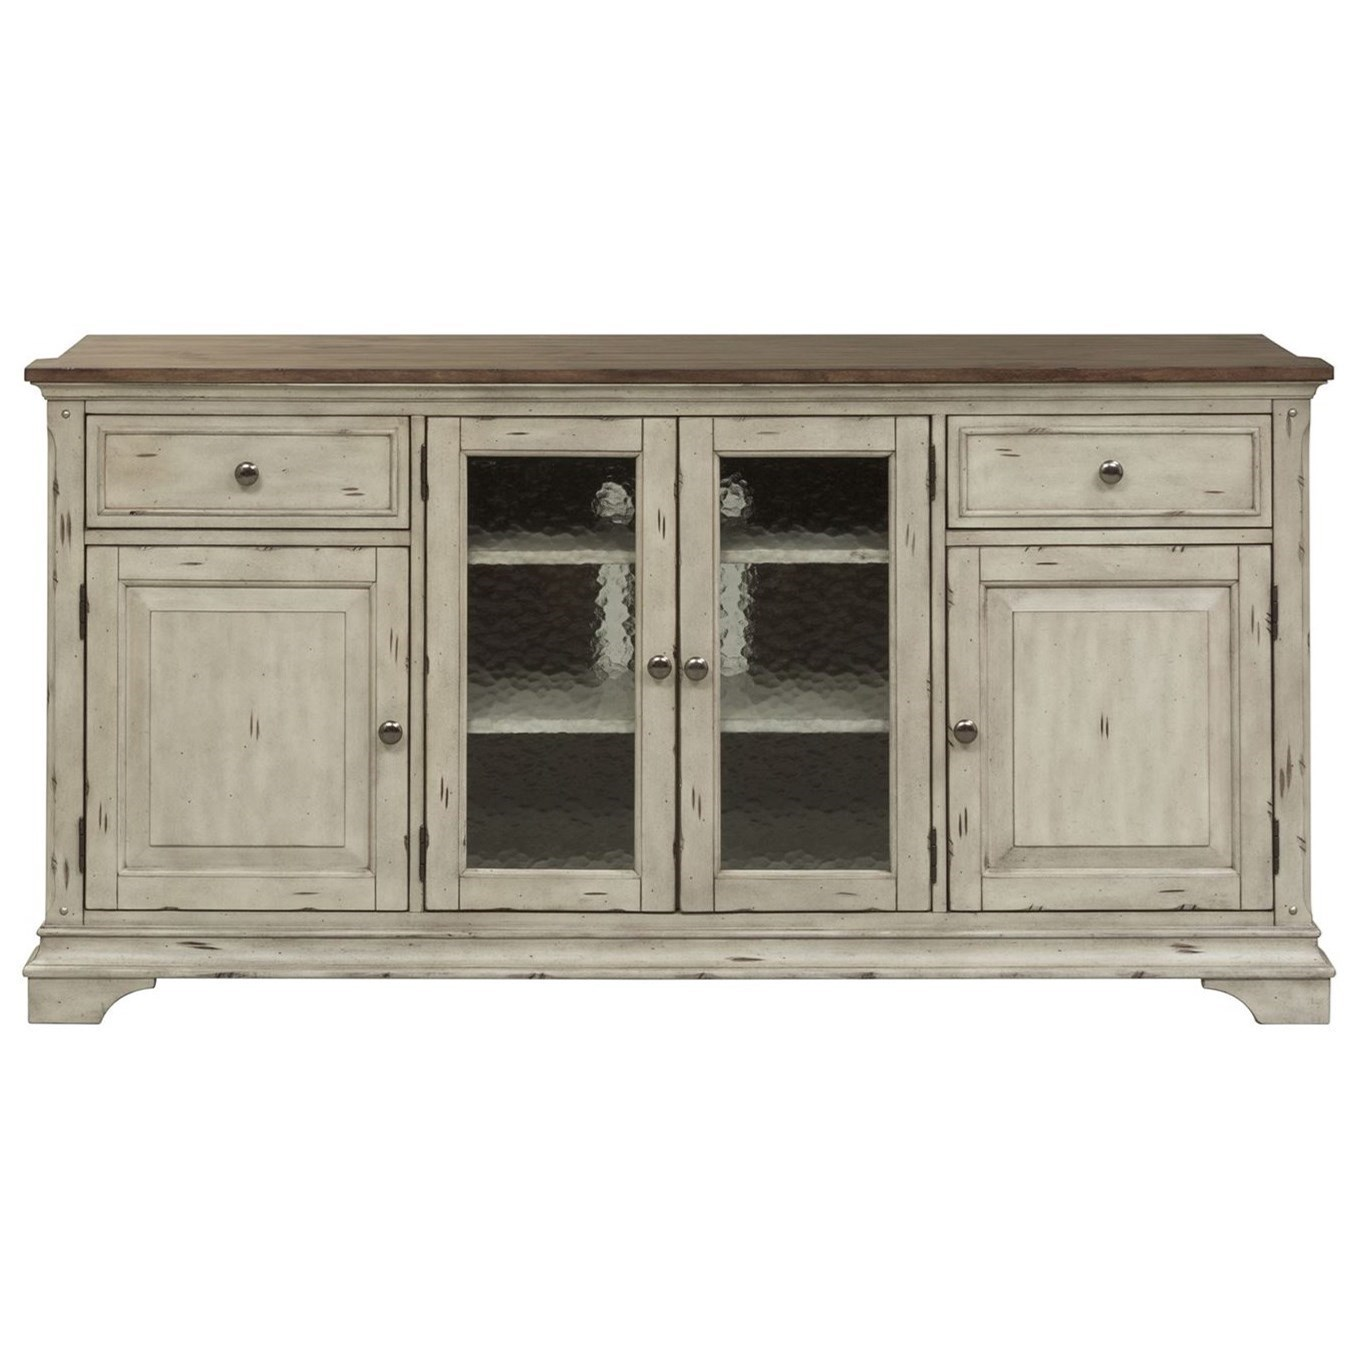 Elegant Liberty Furniture Morgan Creek Relaxed Vintage TV Stand With Adjustable  Wood Shelves